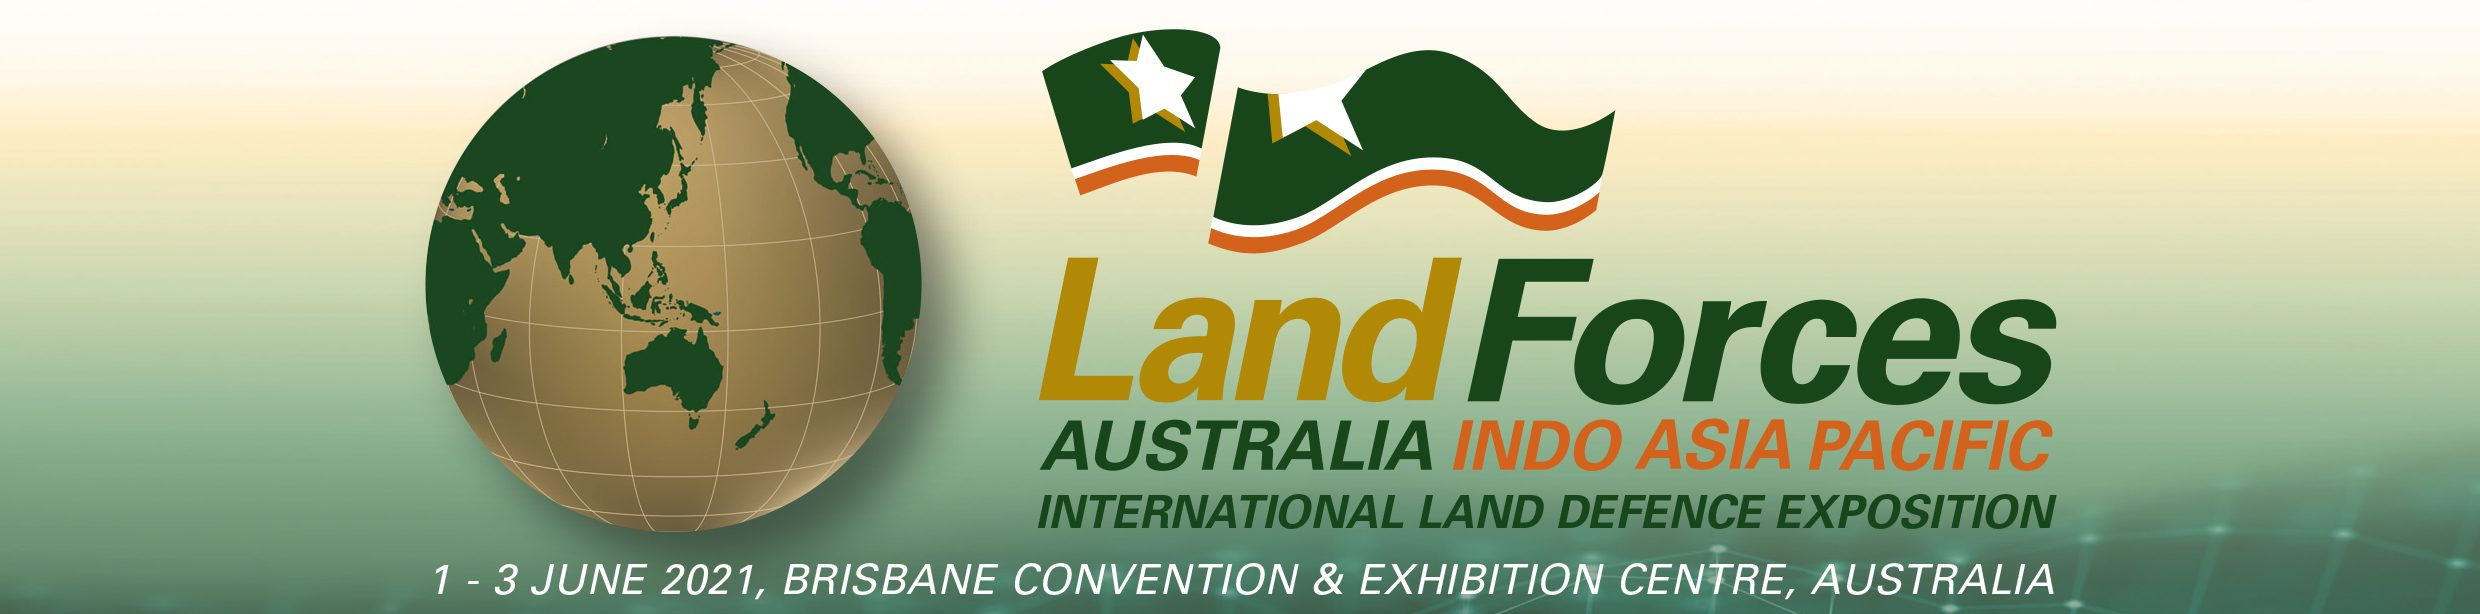 Land Forces Australia